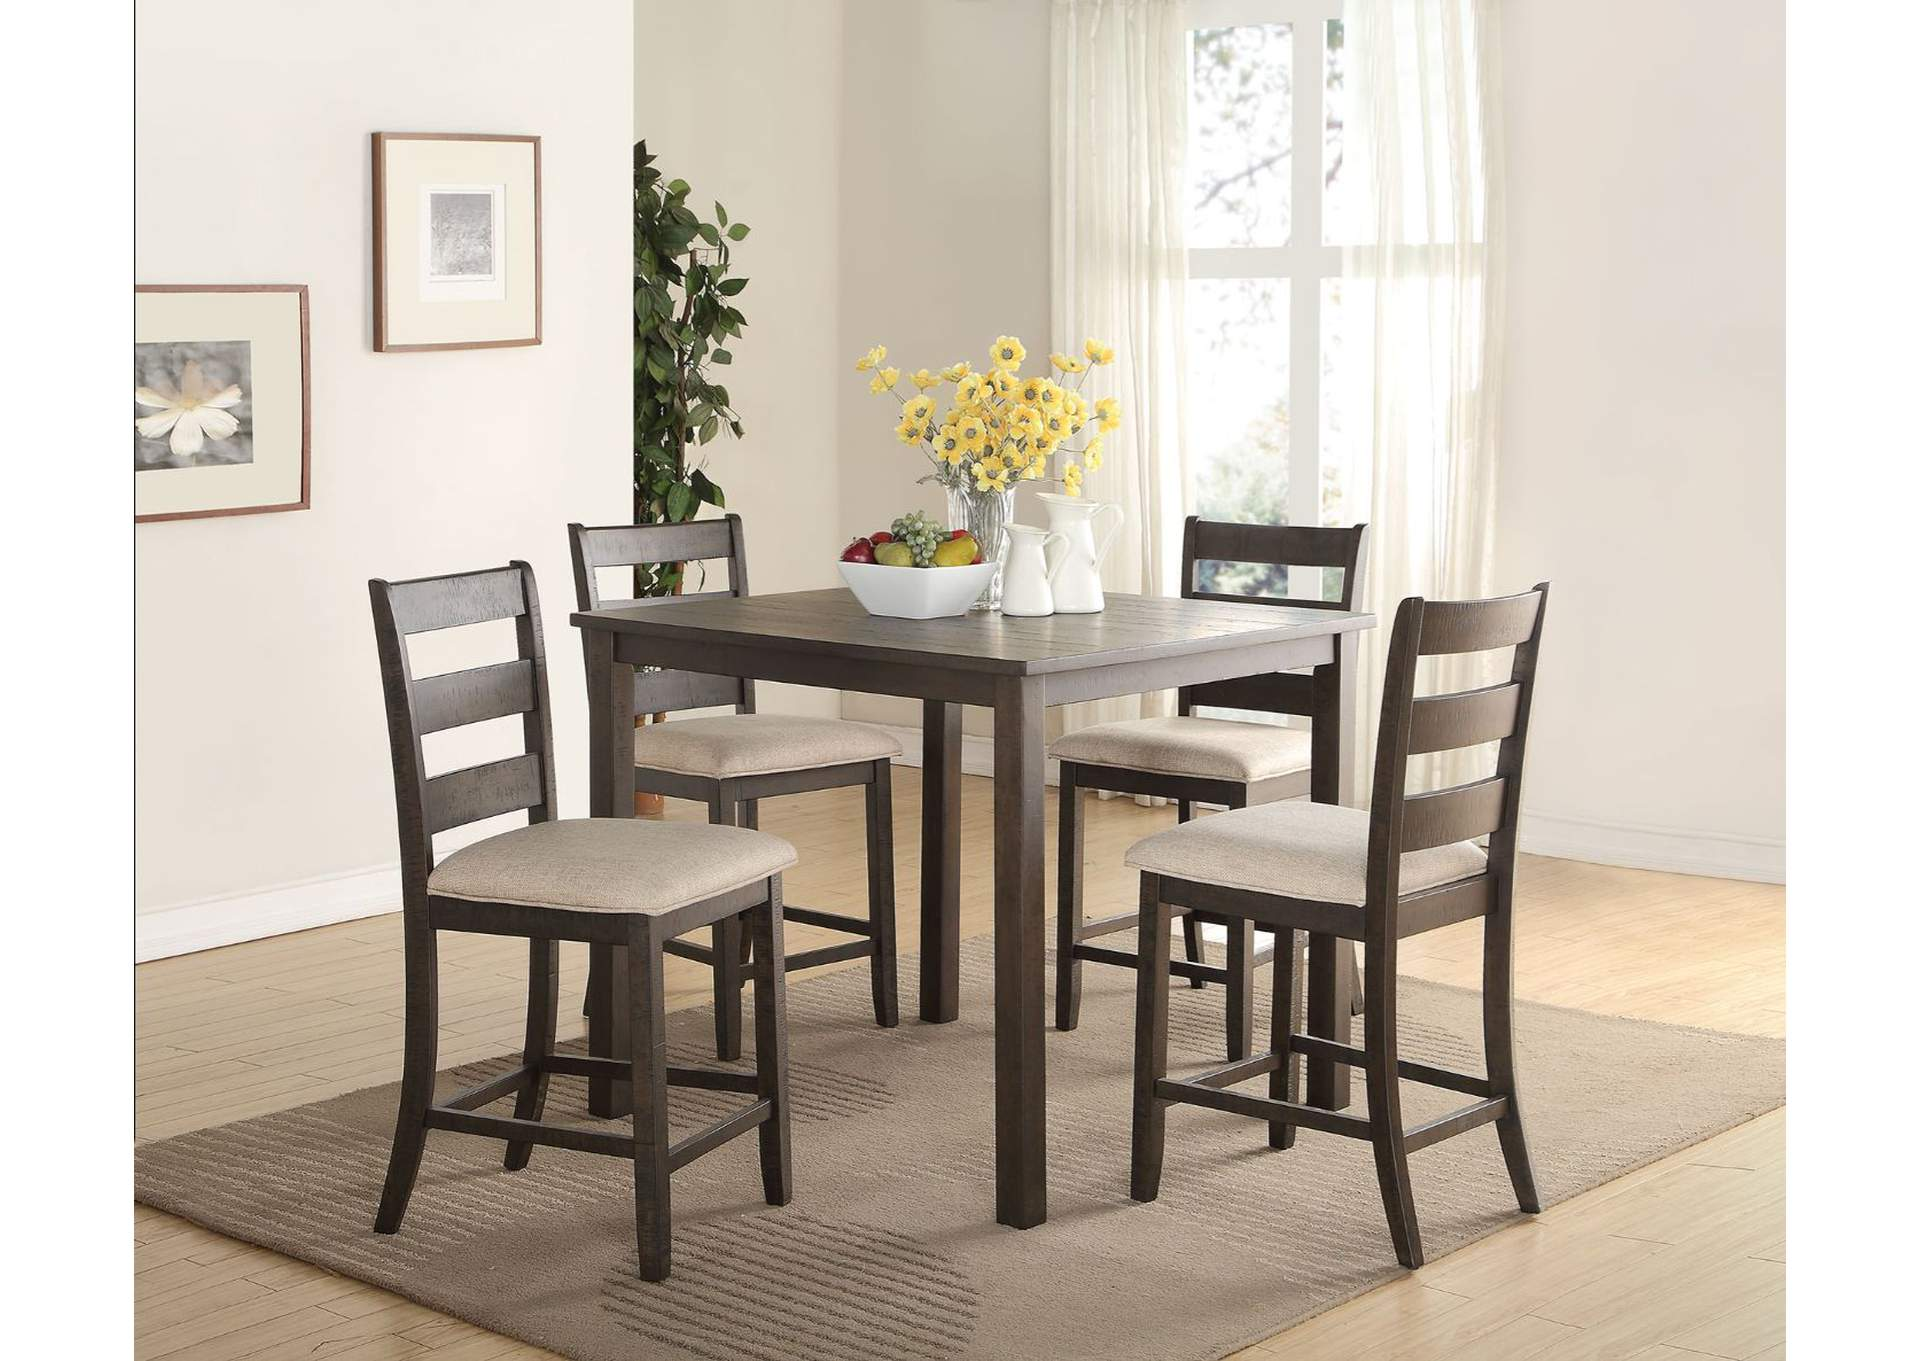 Salileo 5 Piece Counter Height Dining Set,Acme